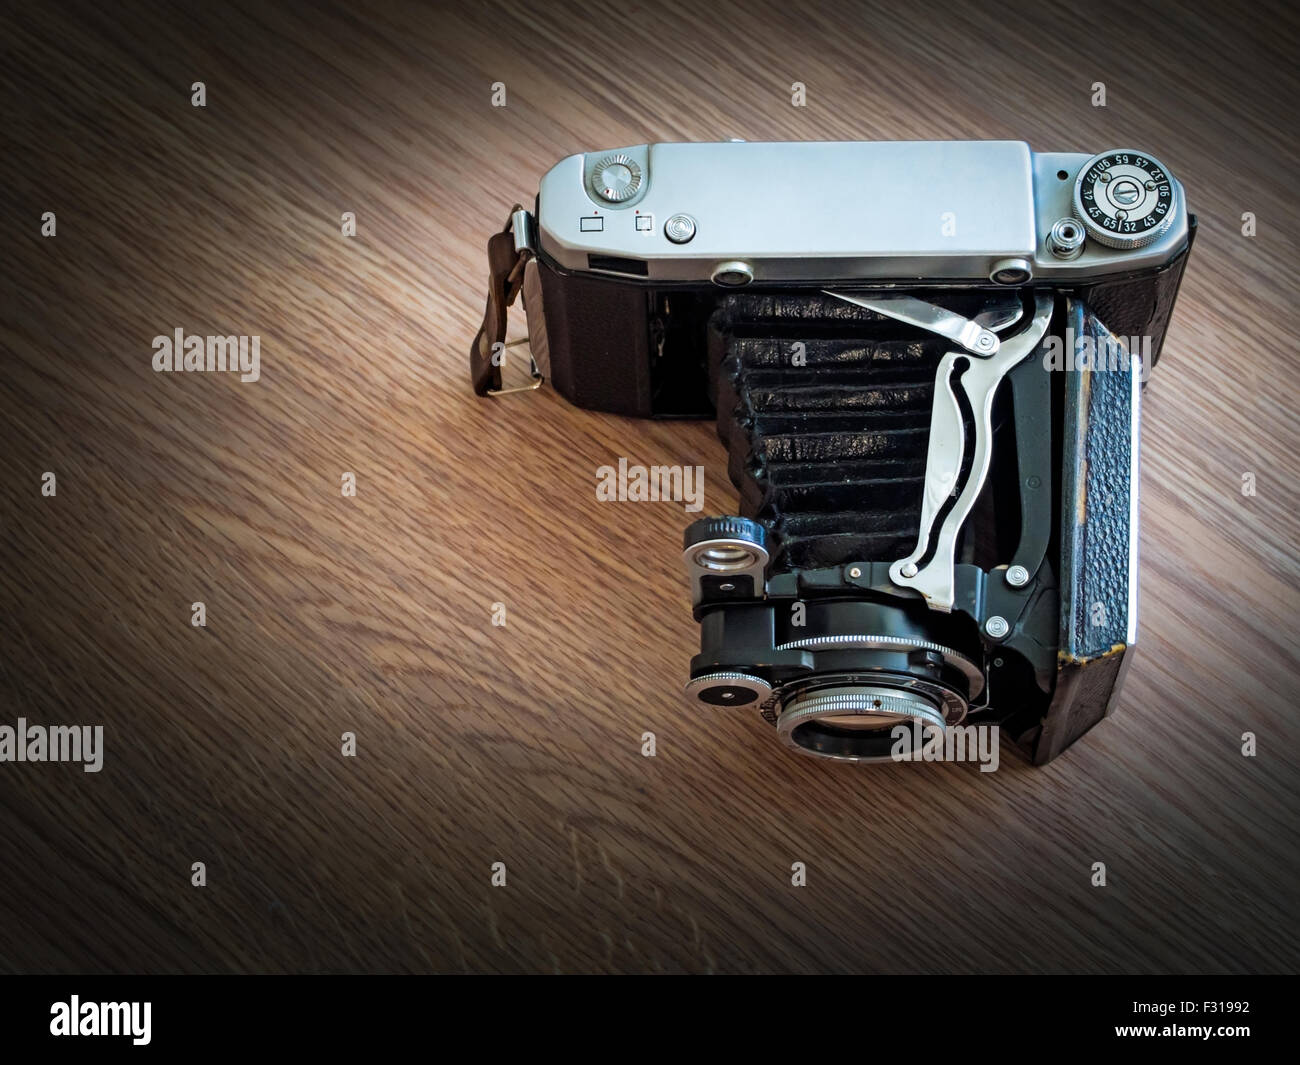 An Old Bellows Medium Format Film Camera View From Above - Stock Image